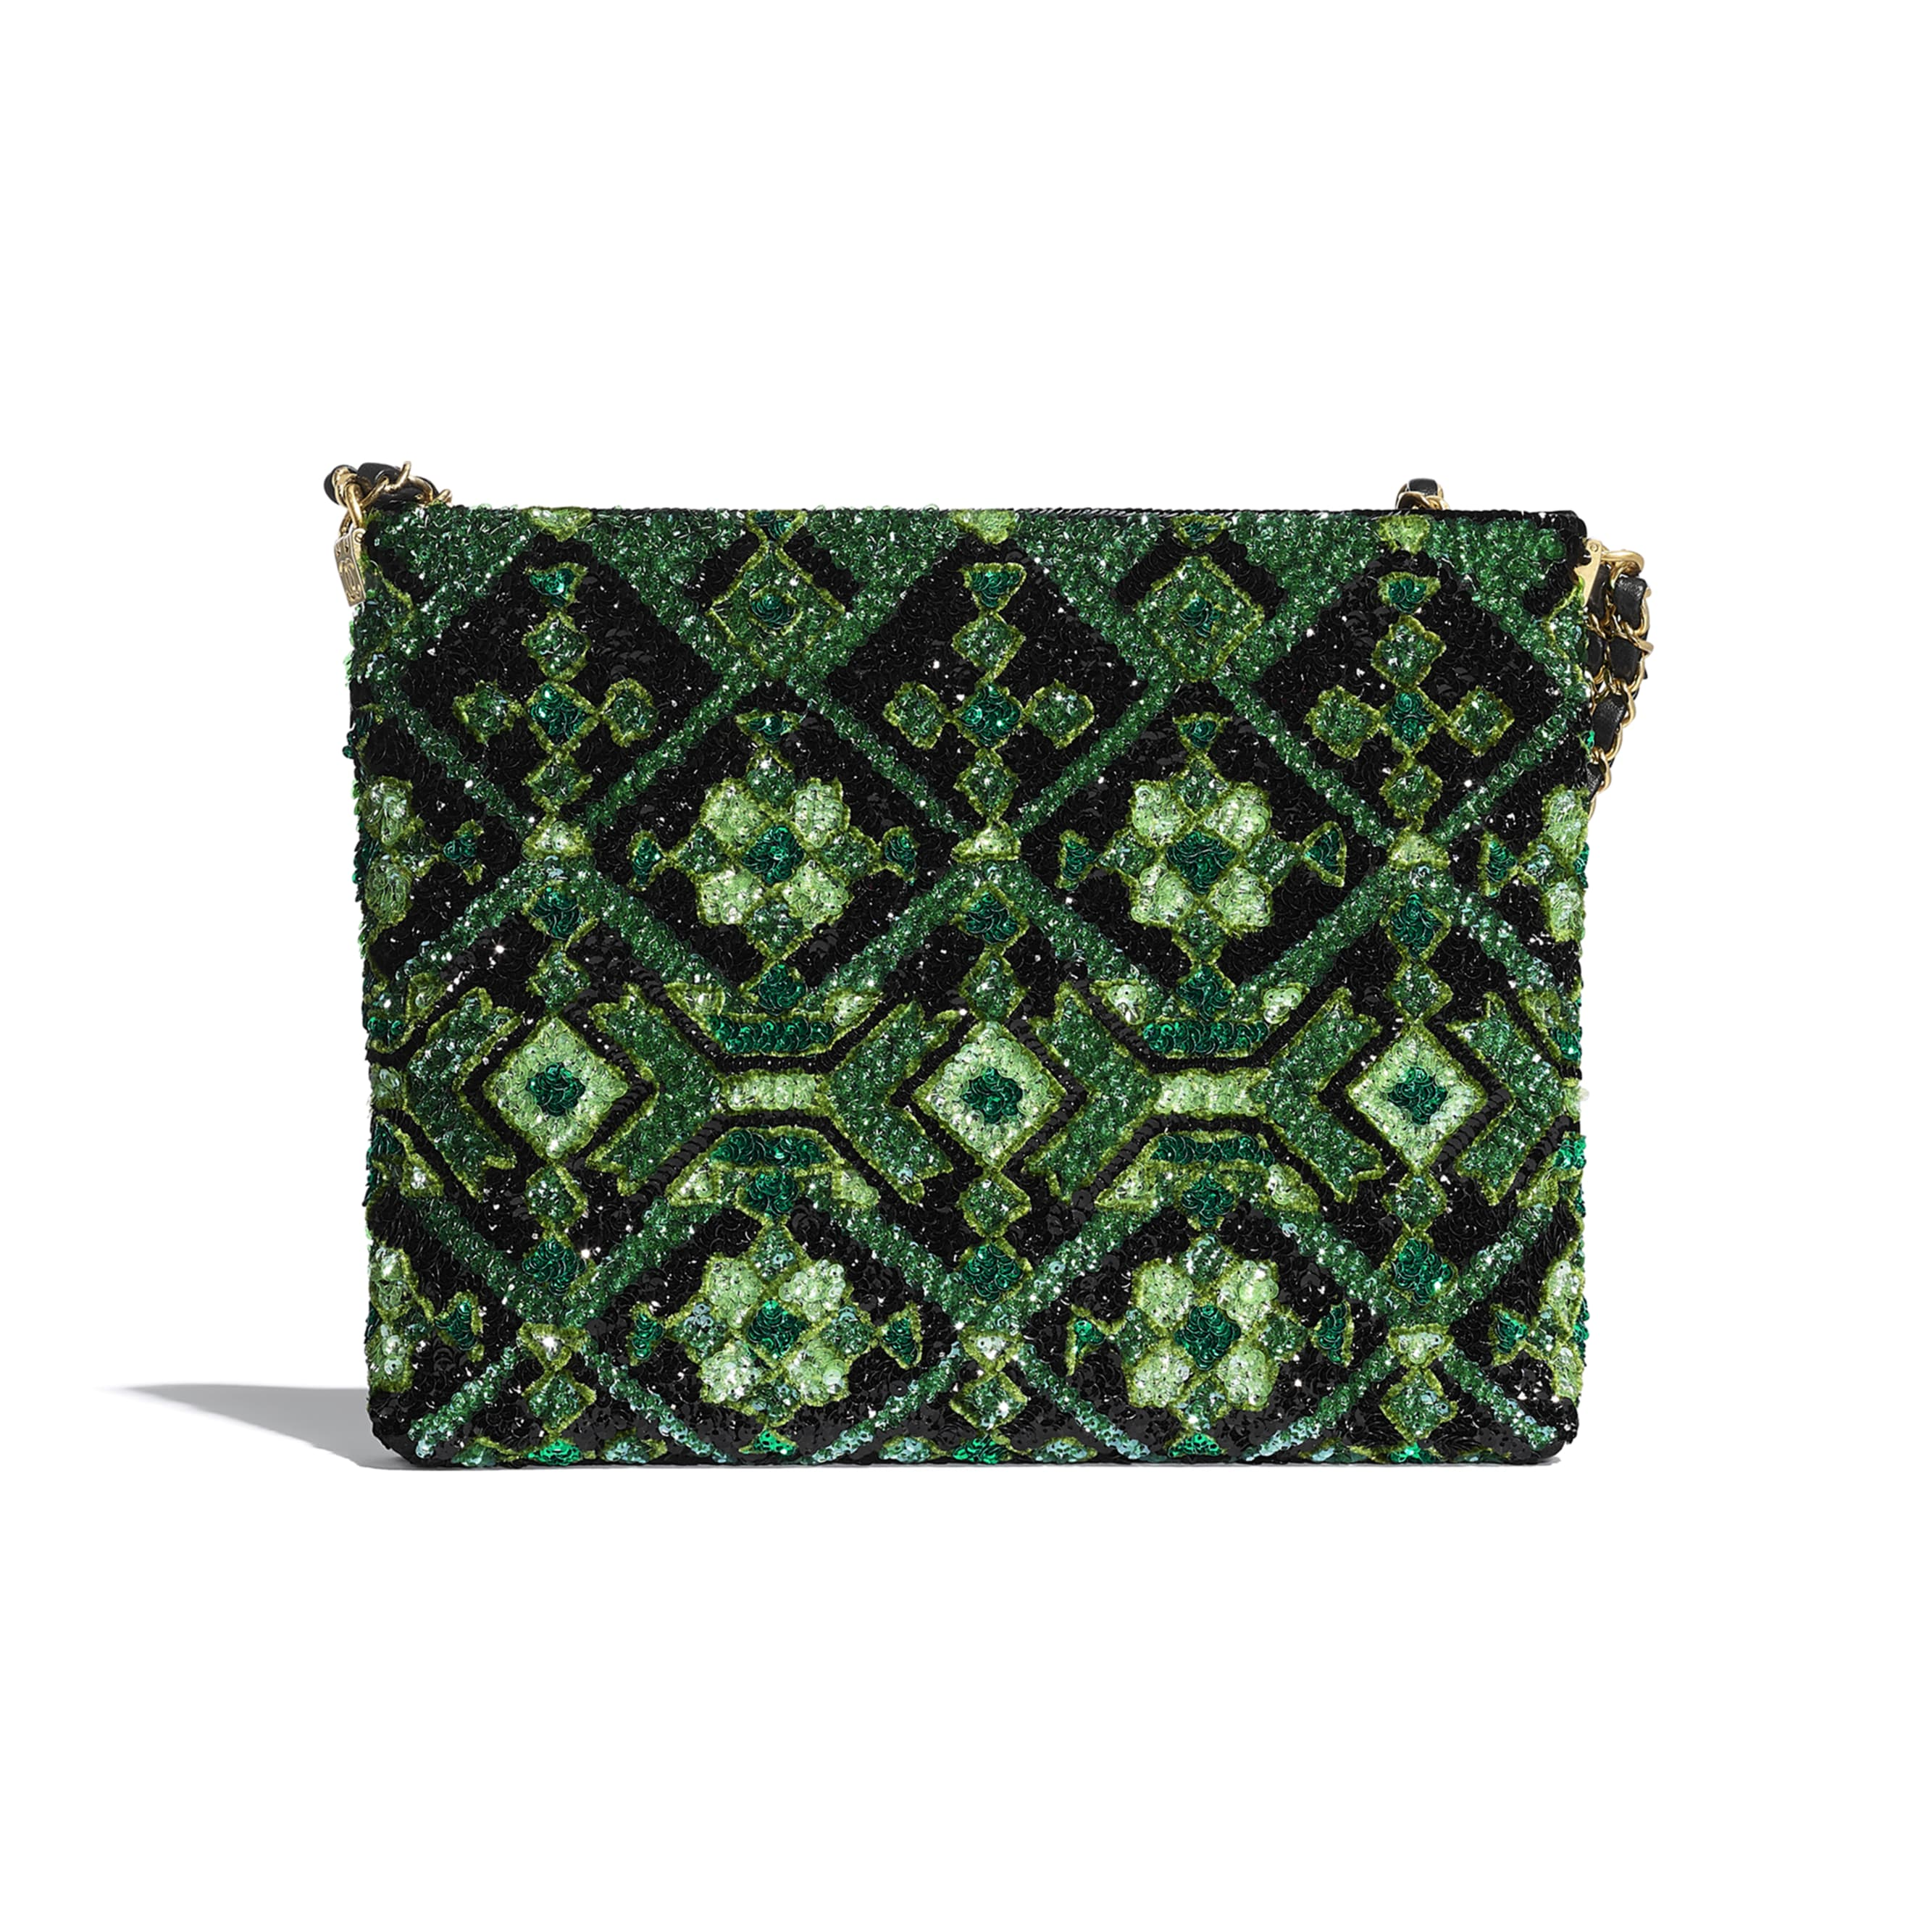 Clutch - Green & Black - Sequins & Gold-Tone Metal - CHANEL - Alternative view - see standard sized version